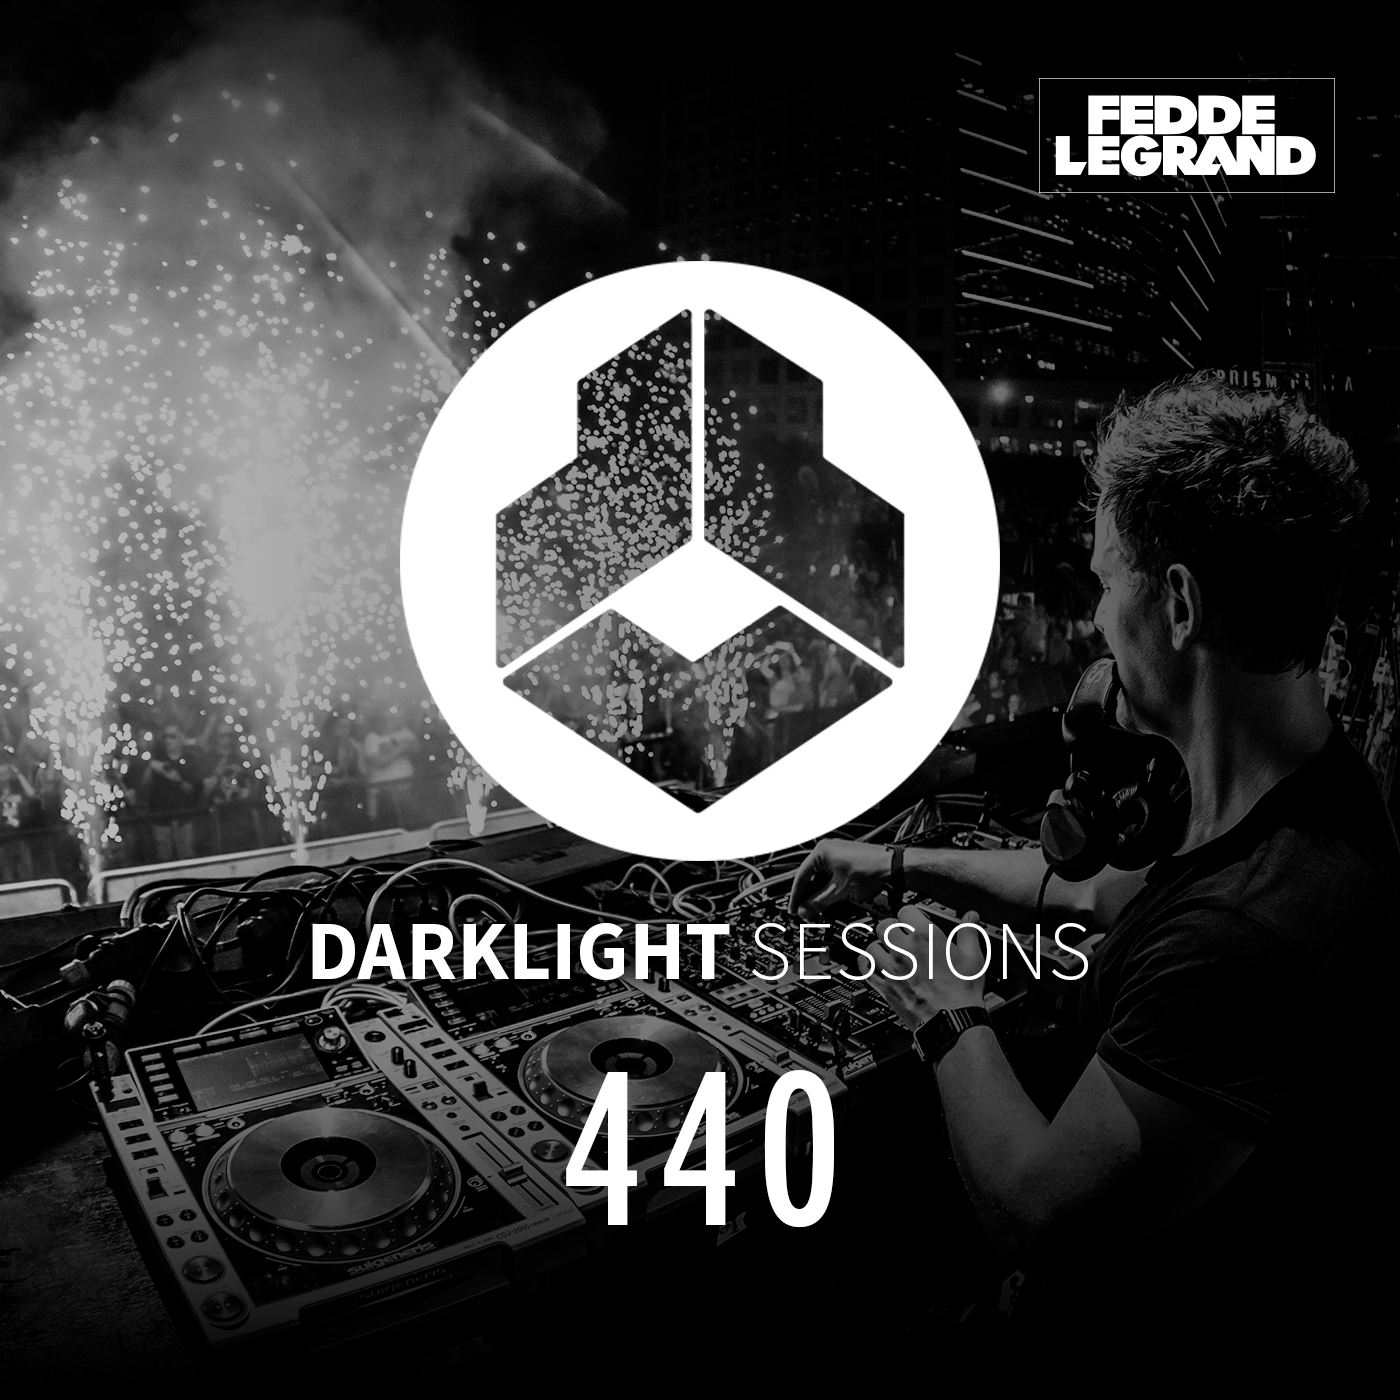 Darklight Sessions 440